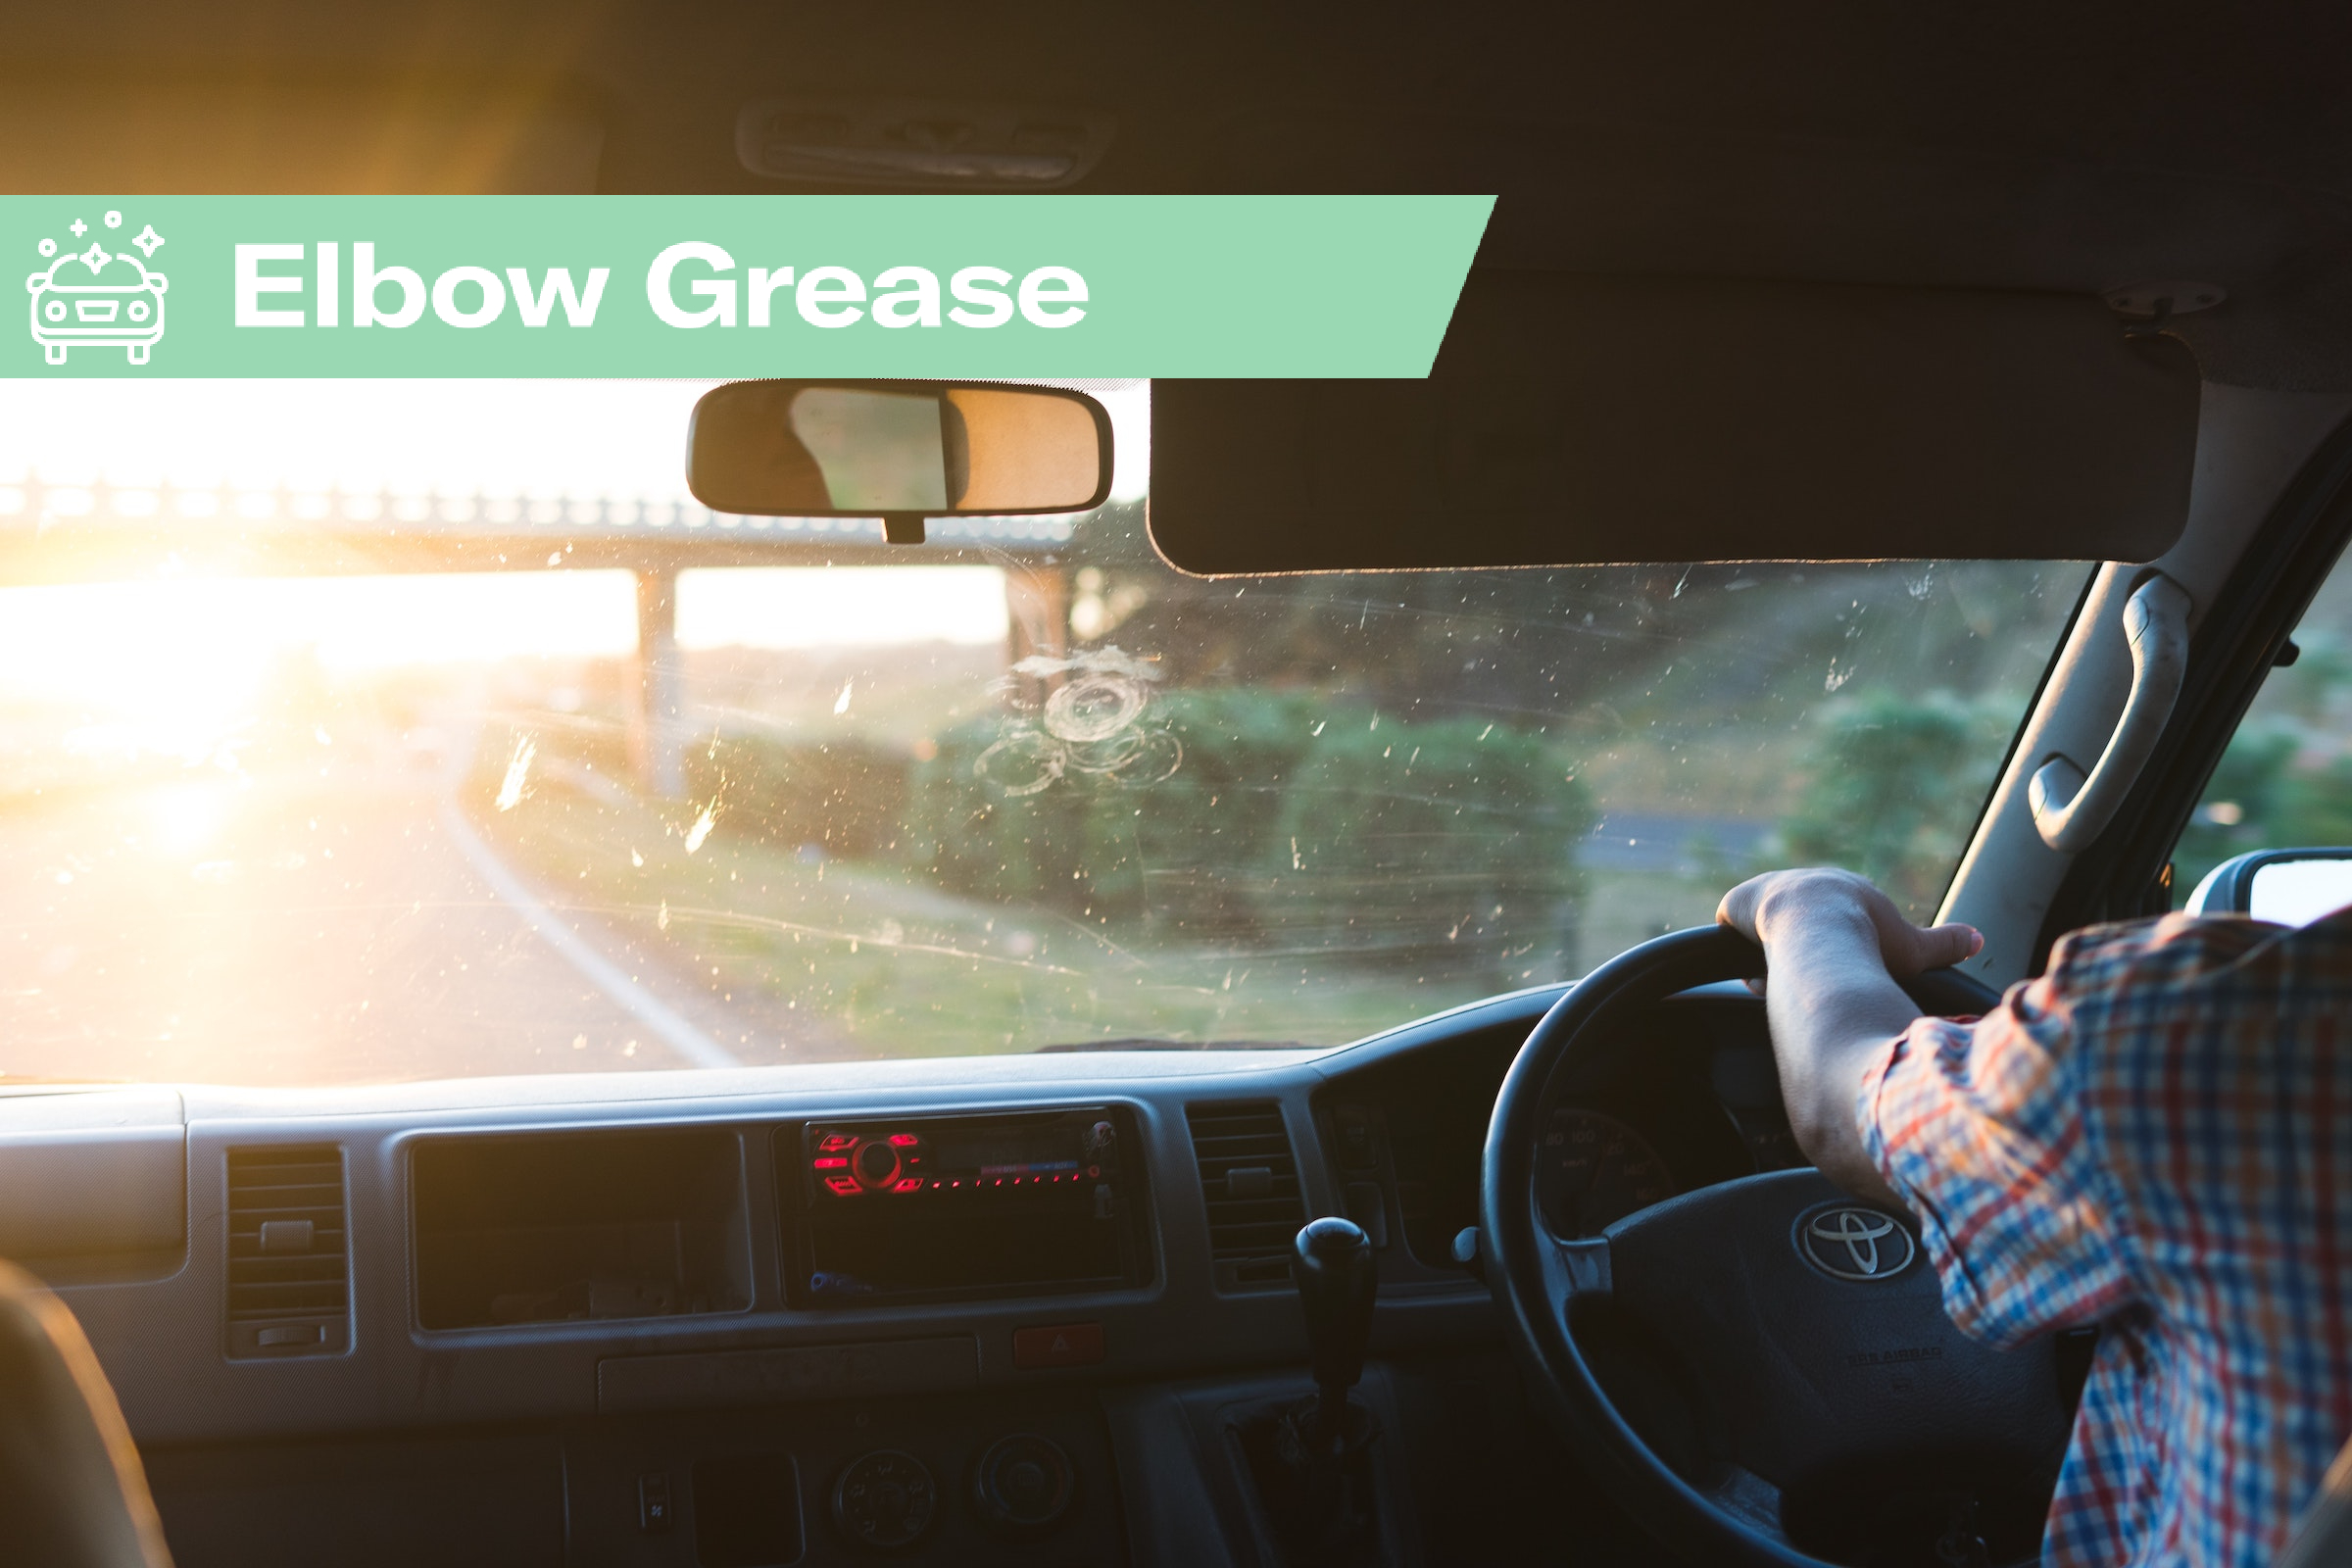 Elbow Grease: Some clarity on cleaning glass